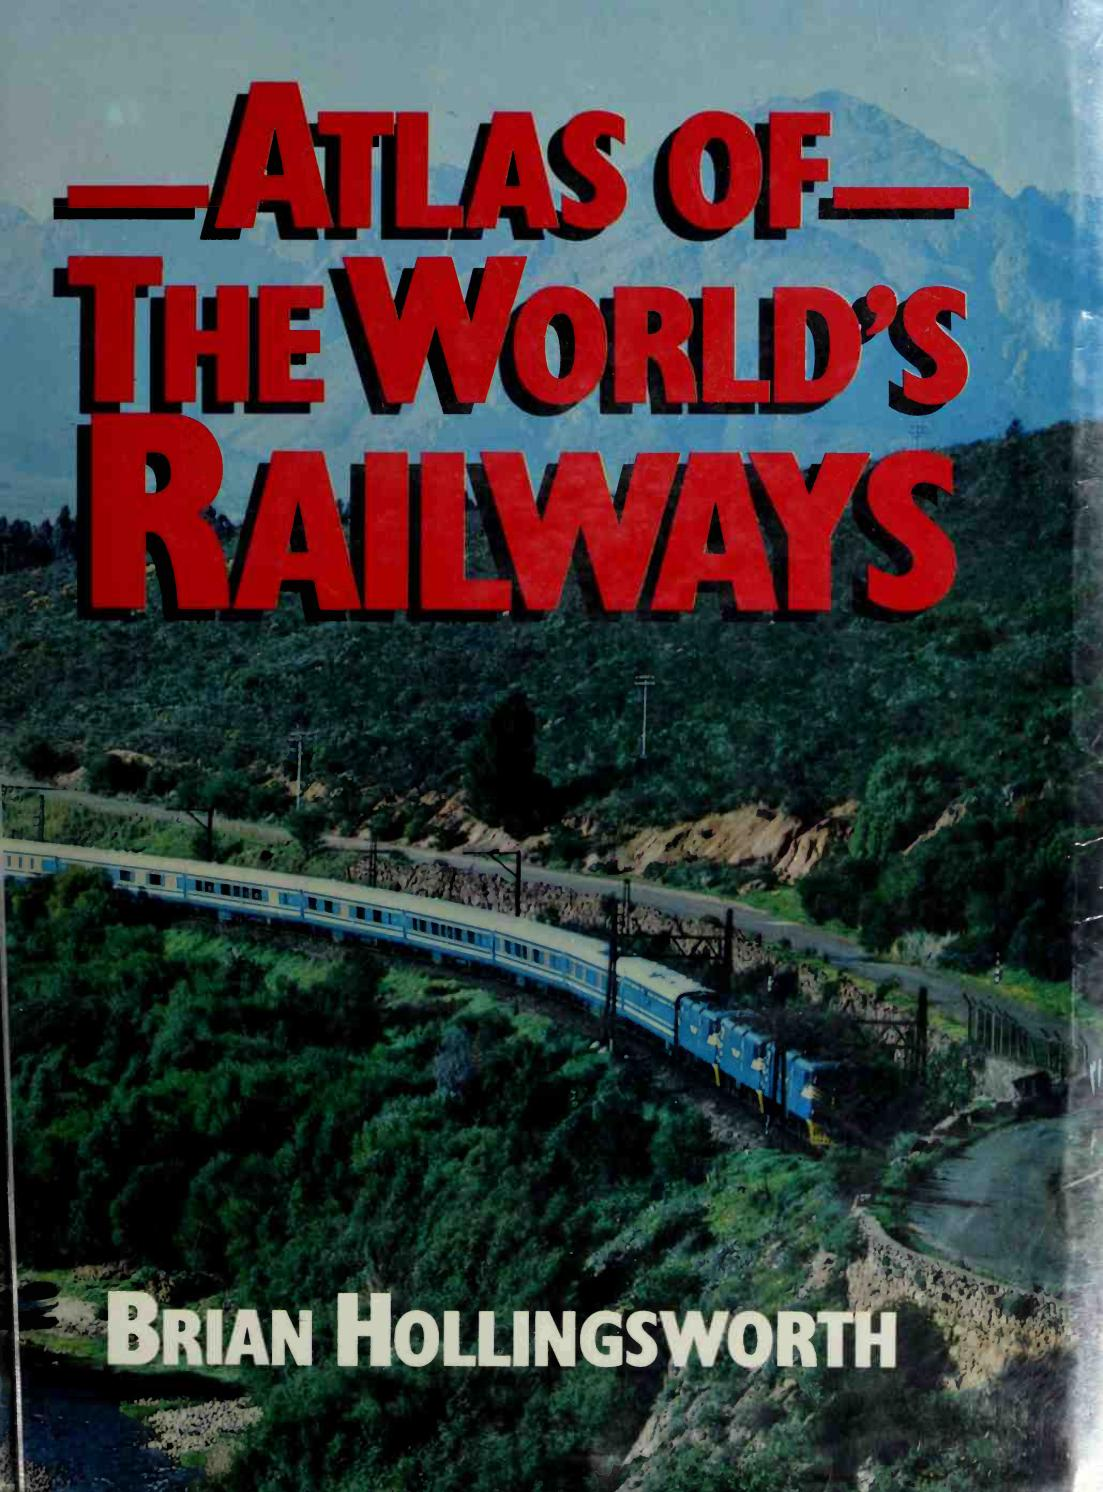 Glasregal Zigzag+atlas Atlas Of The World S Railways